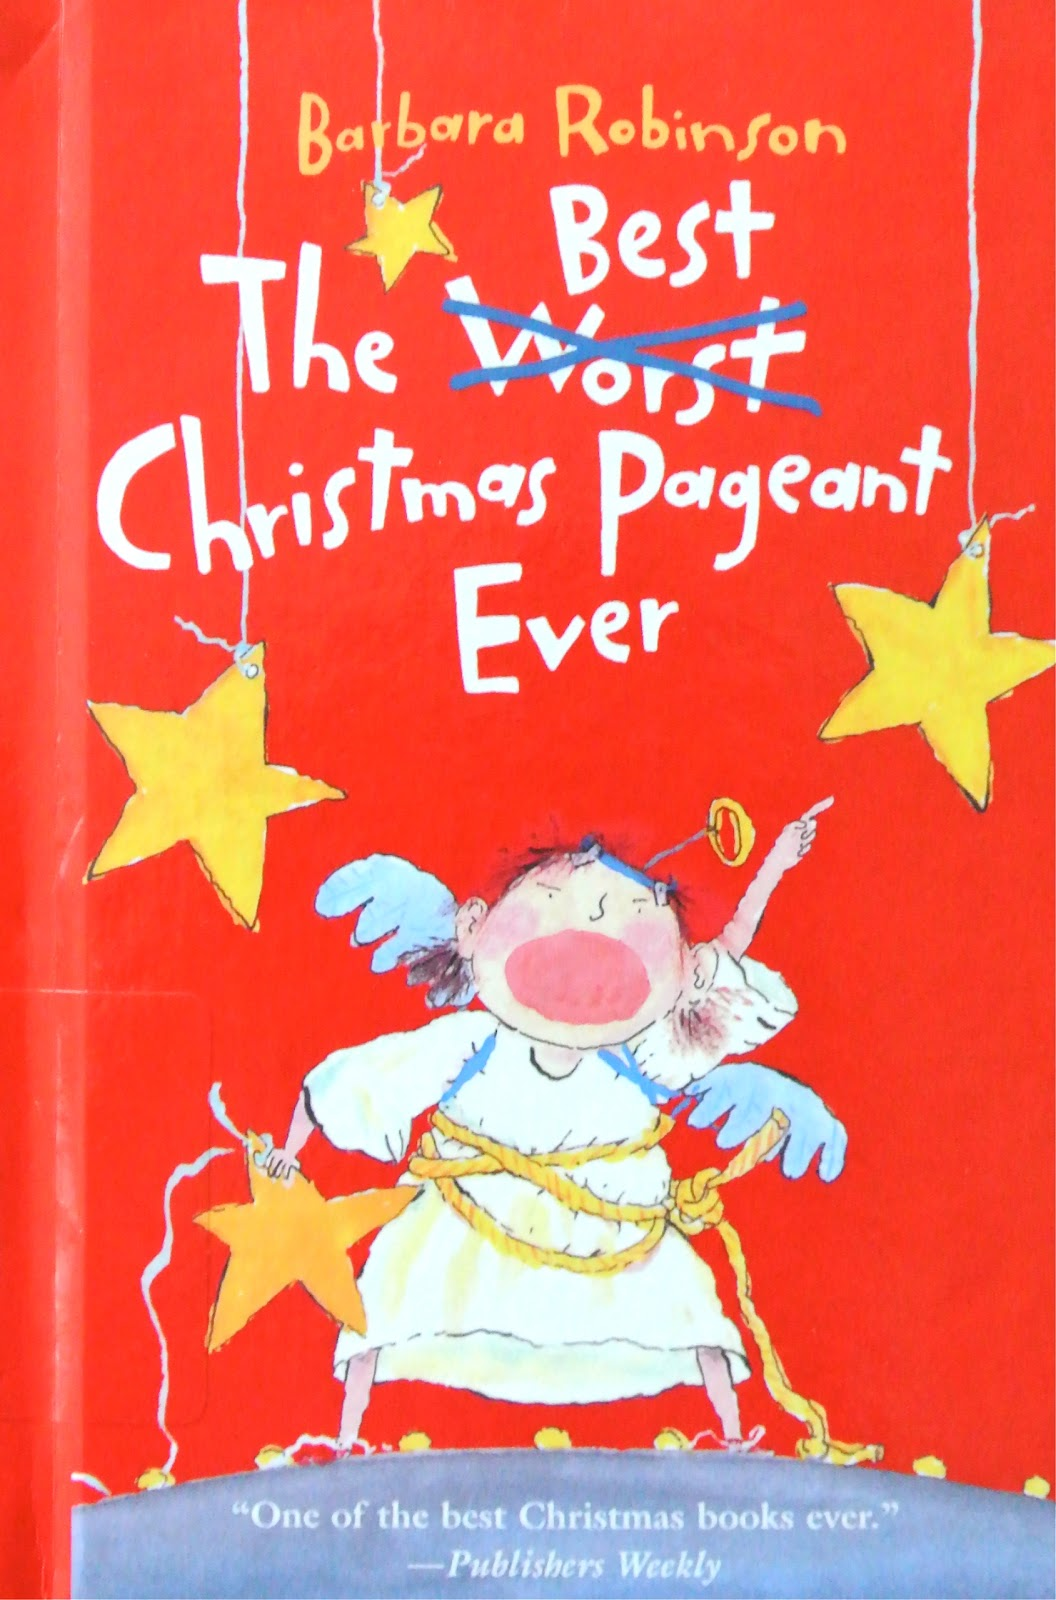 ... school librarian: The Best Christmas Pageant Ever by Barbara Robinson